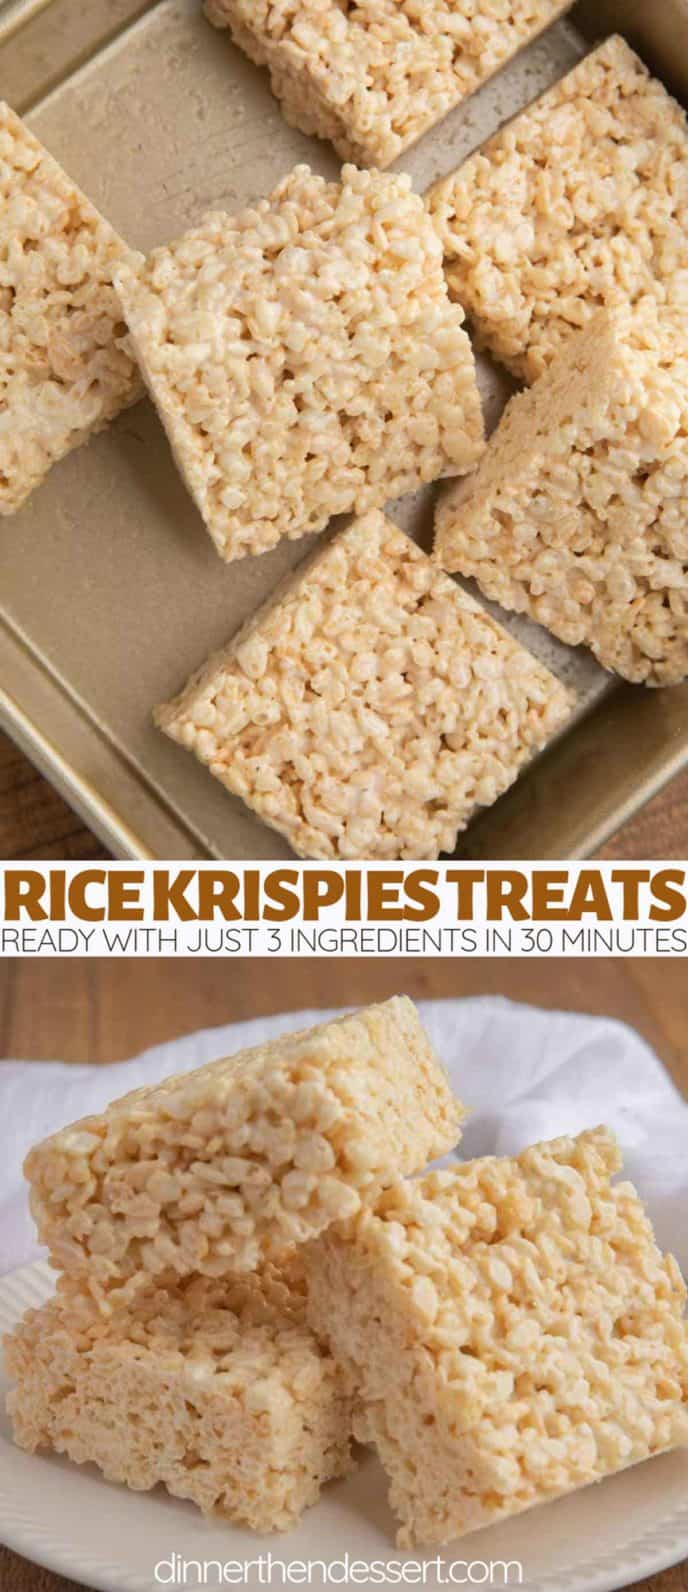 Rice Krispies Treats in a pan